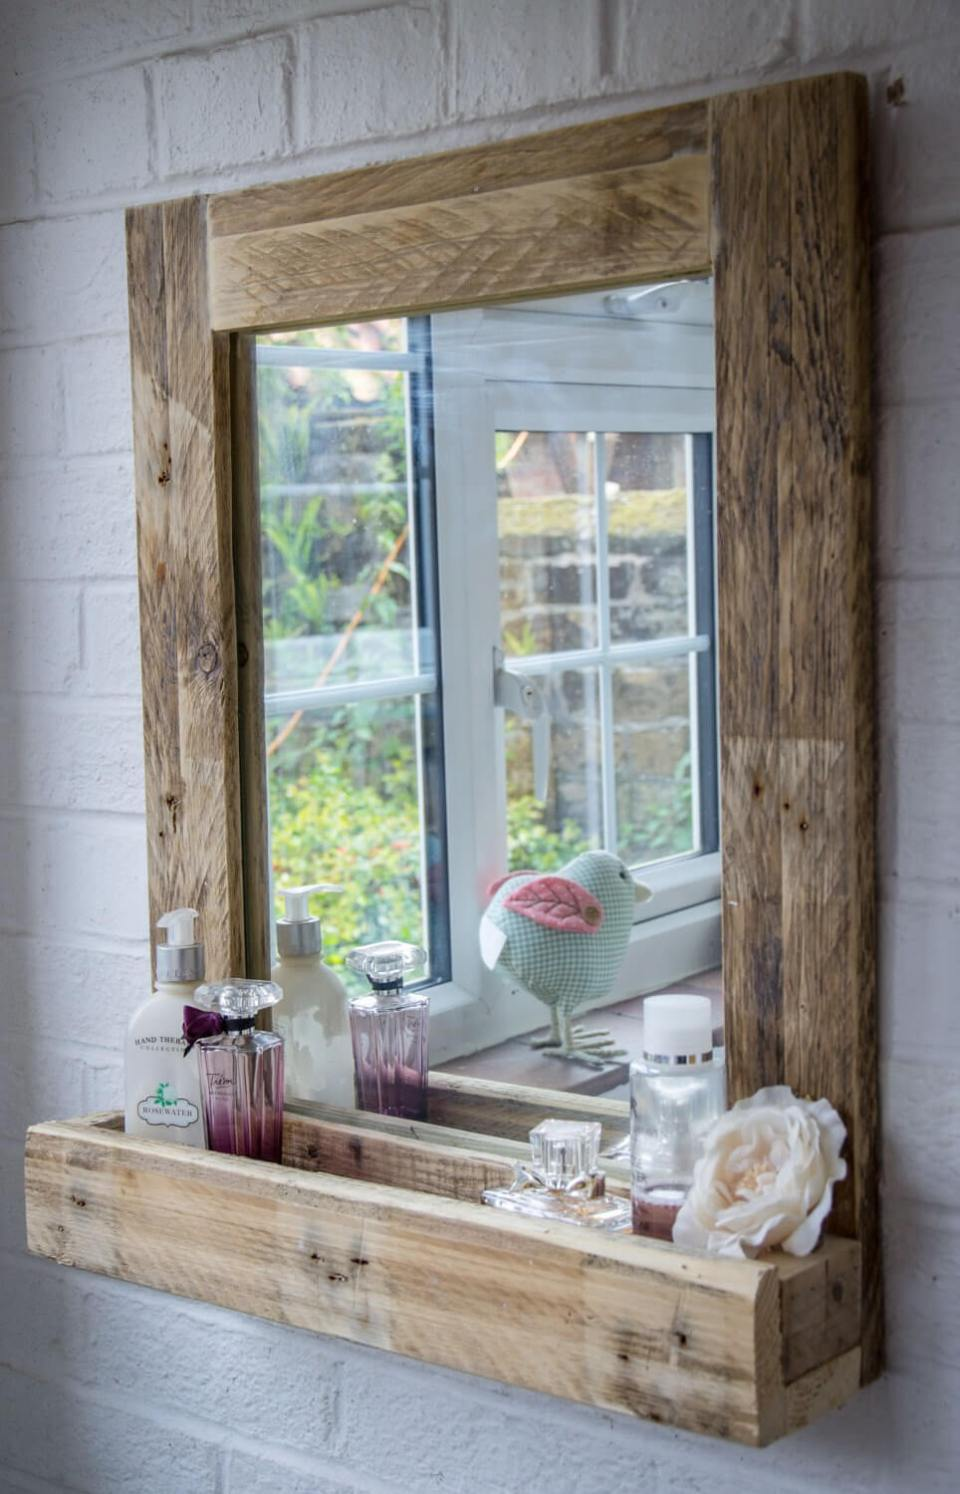 Stone Double Sink and Barn Wood Paneling